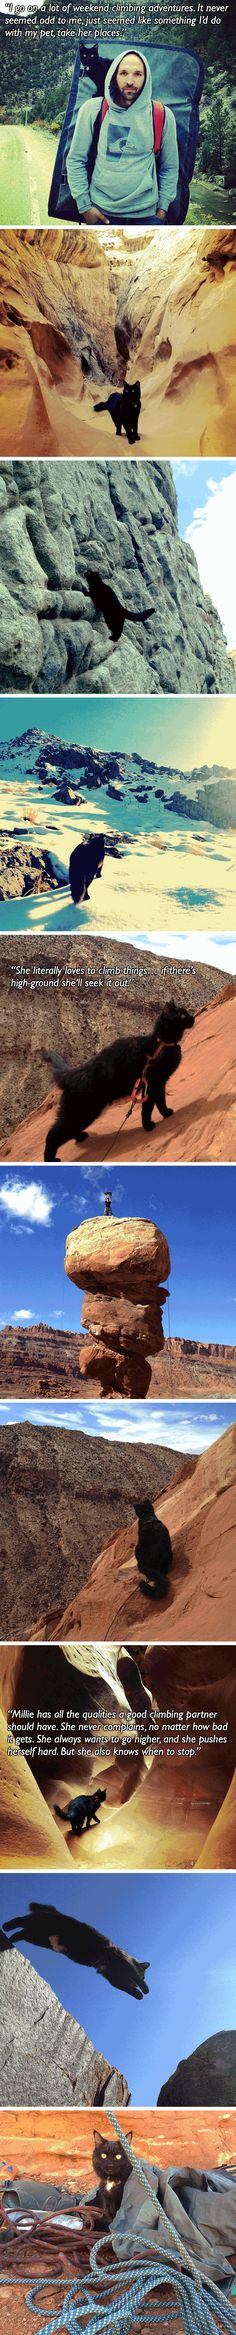 Meet Millie, the mountain climbing cat. I love this.